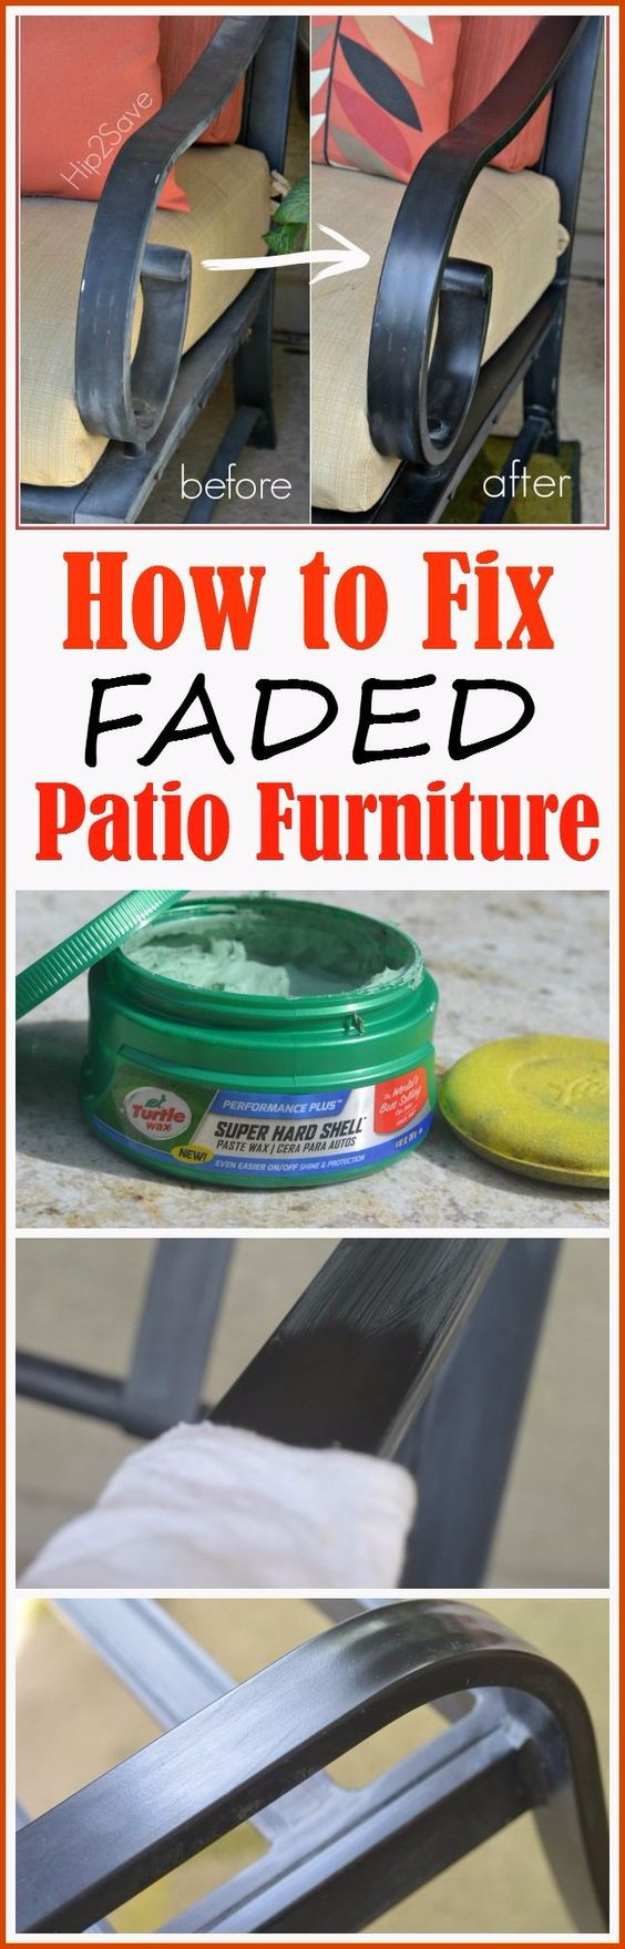 DIY Furniture Refinishing Tips - Fix Faded Aluminum Patio Furniture - Creative Ways to Redo Furniture With Paint and DIY Project Techniques - Awesome Dressers, Kitchen Cabinets, Tables and Beds - Rustic and Distressed Looks Made Easy With Step by Step Tutorials - How To Make Creative Home Decor On A Budget